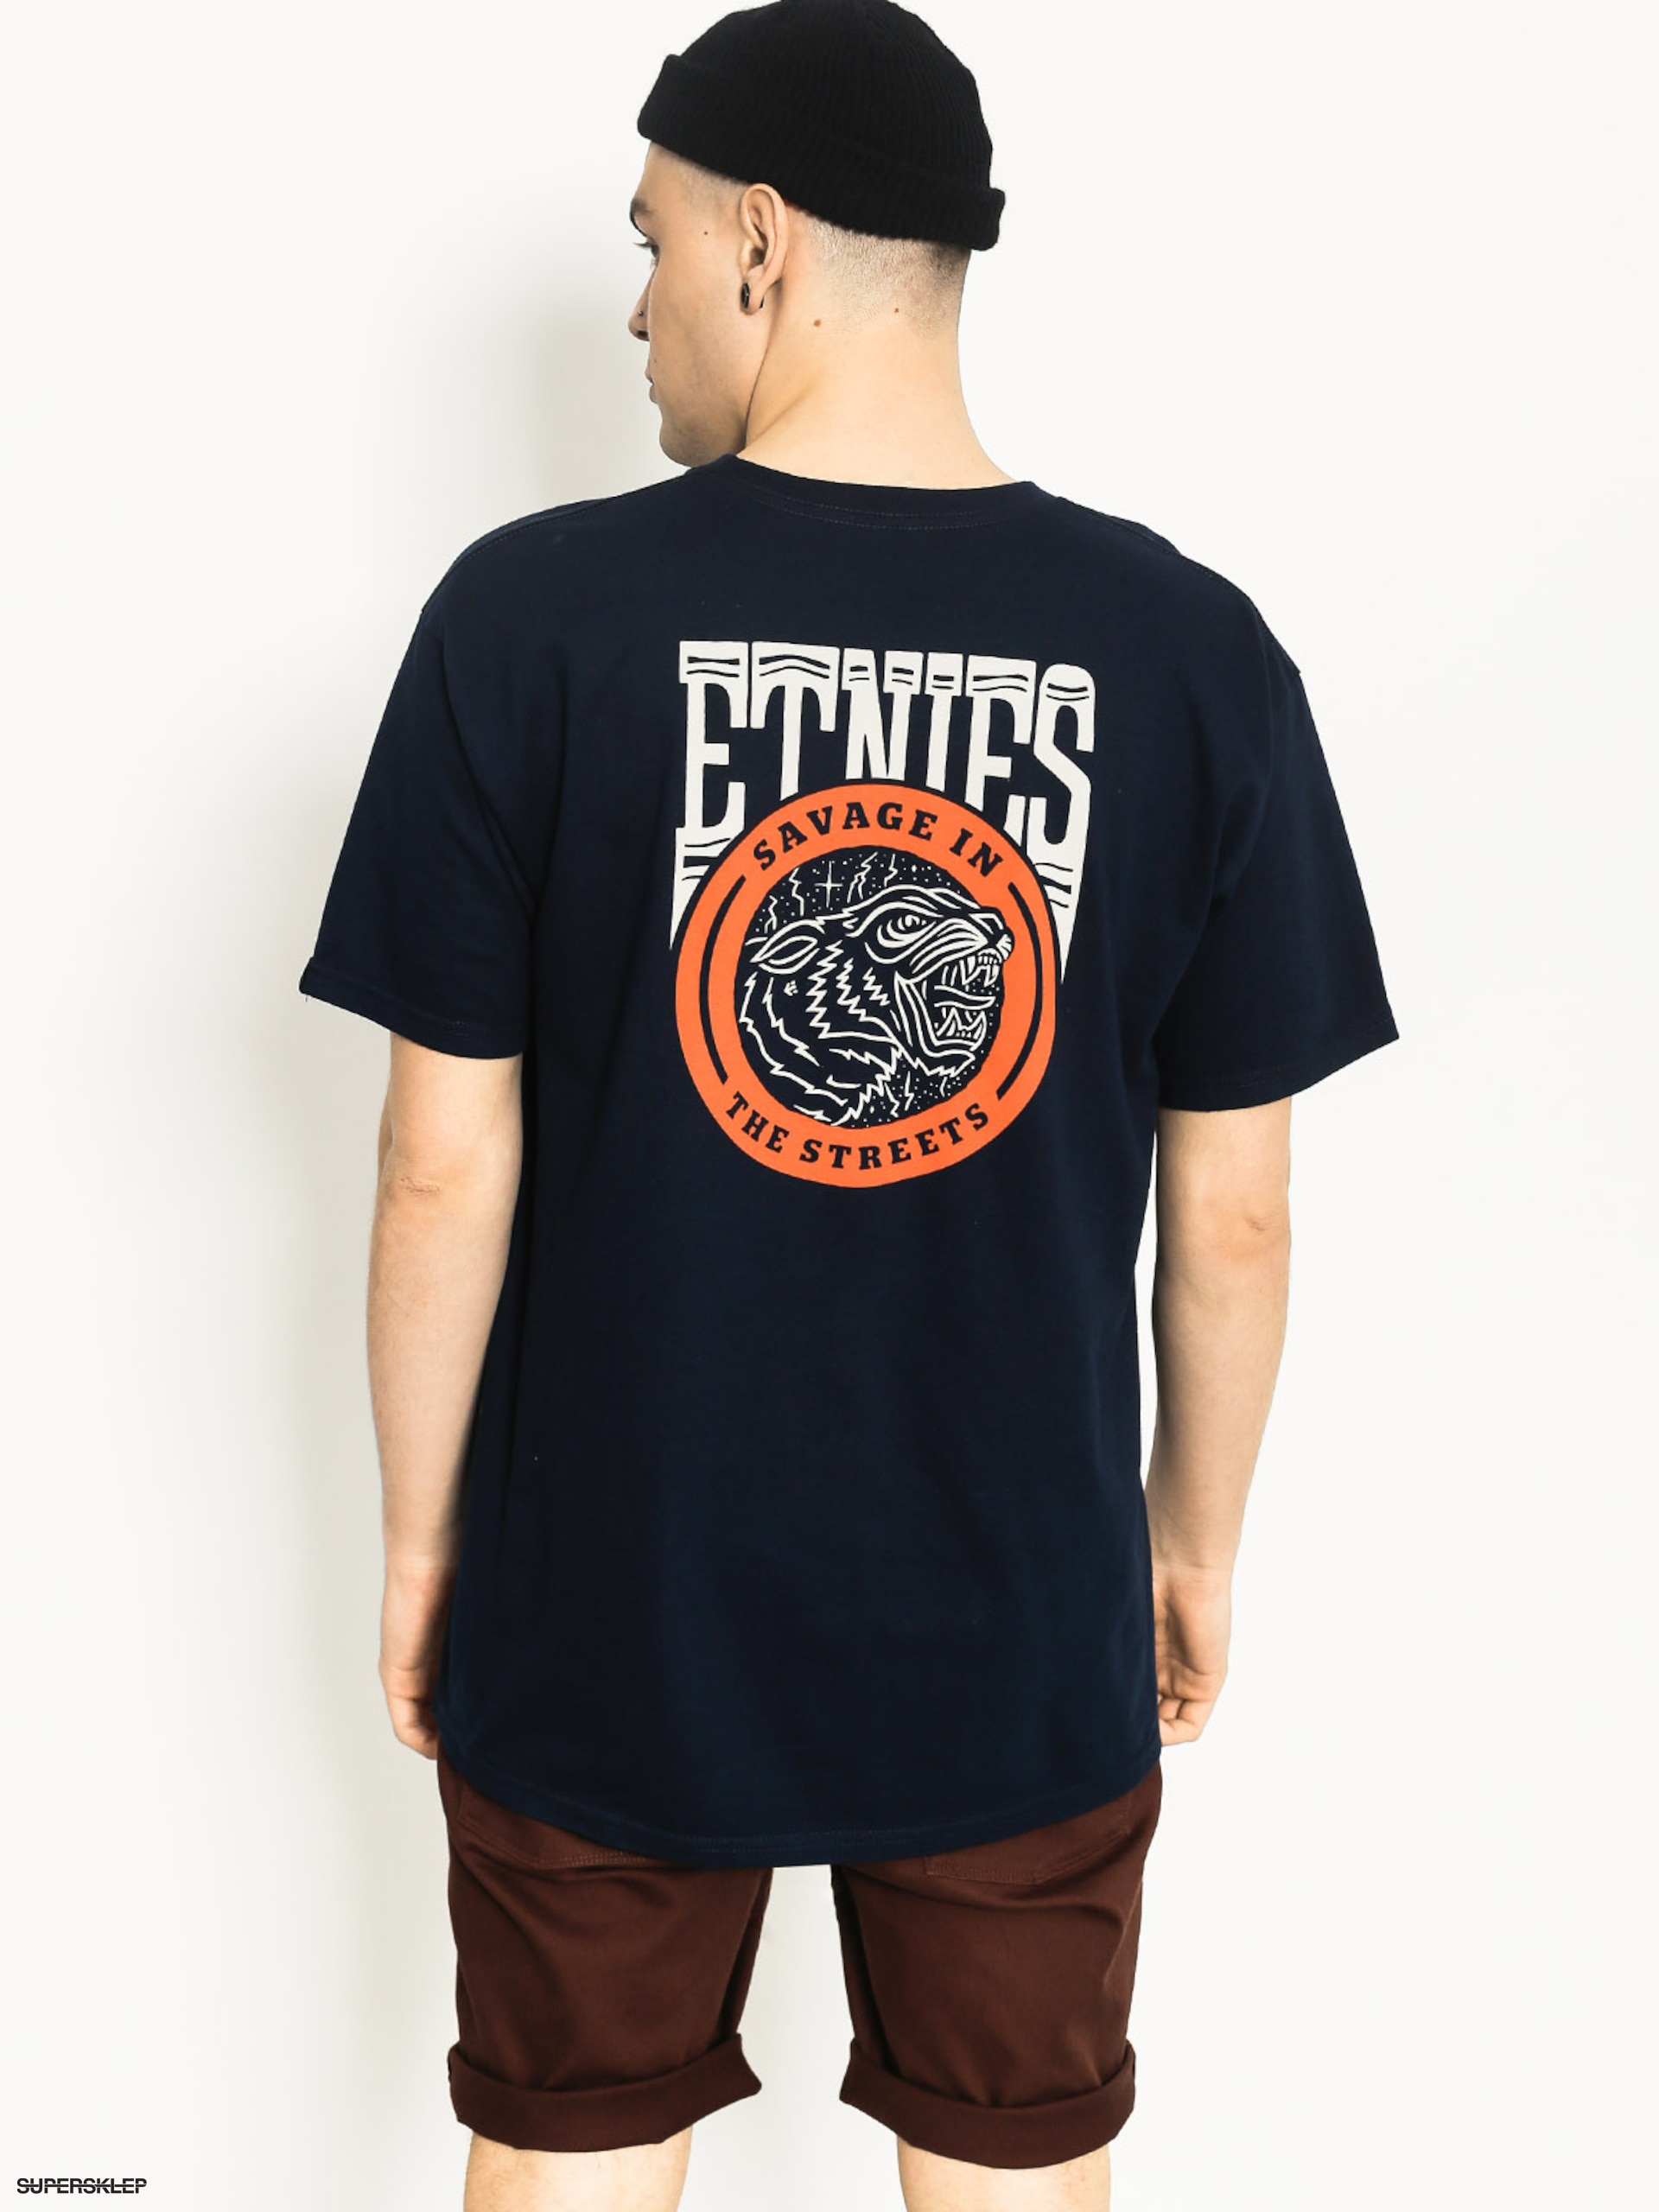 T-shirt Etnies Savage Streets (navy)